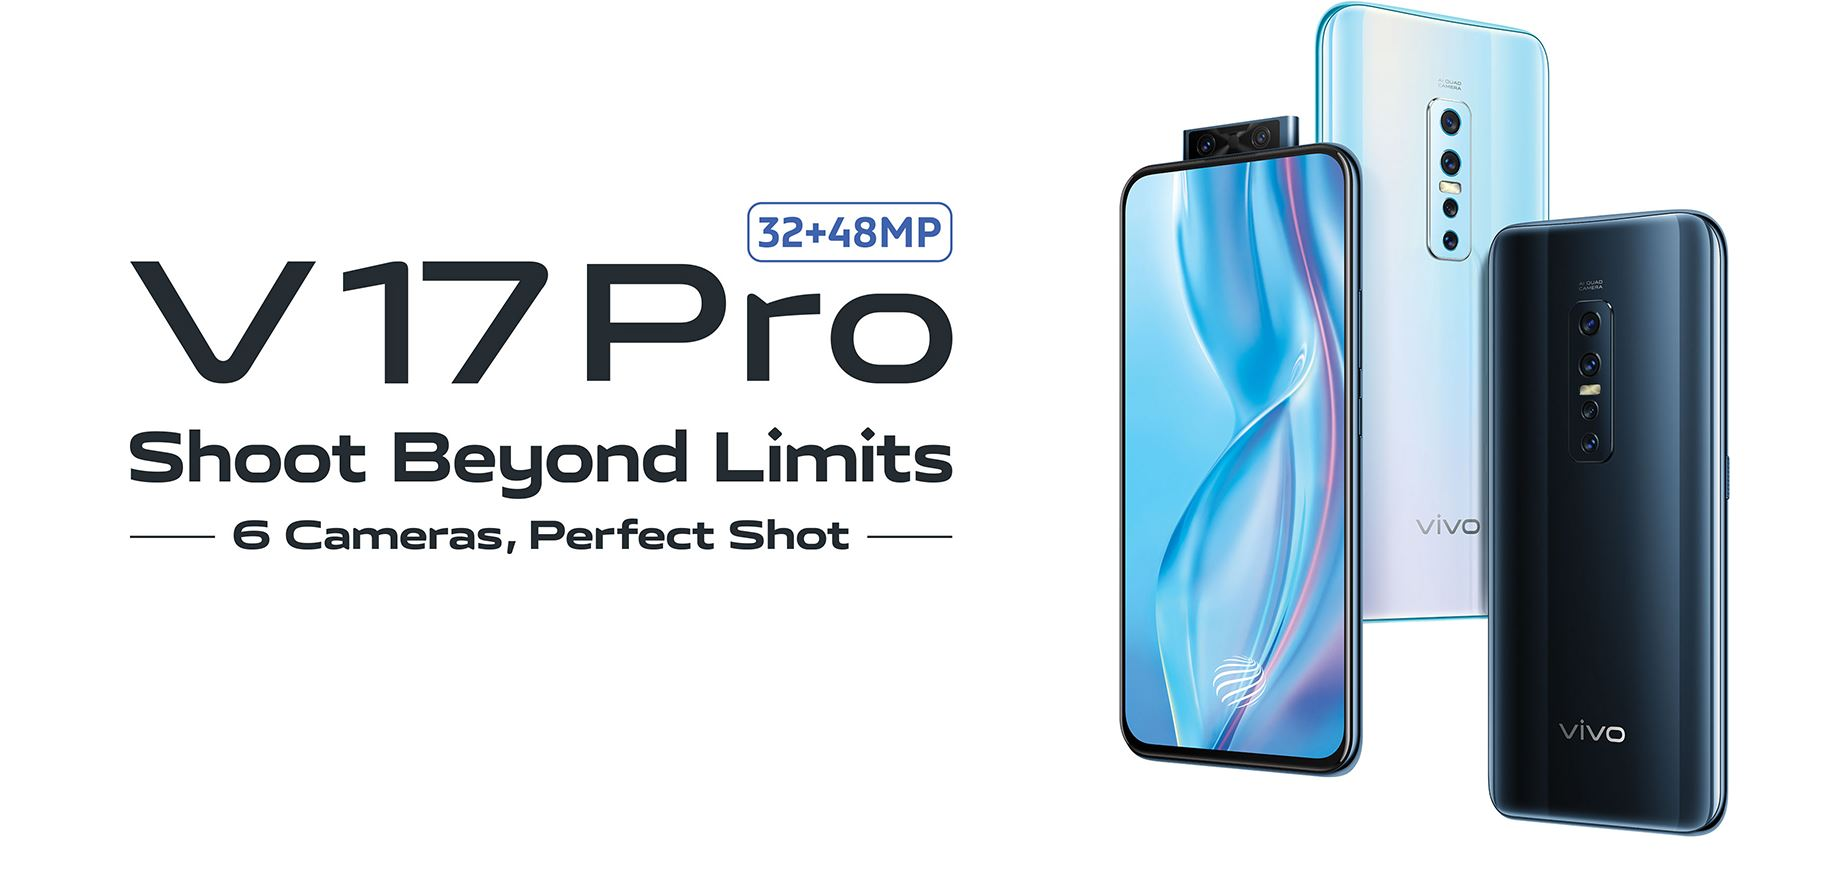 vivo-v17-pro-shoots-beyond-limits-thanks-to-dual-selfie-camera